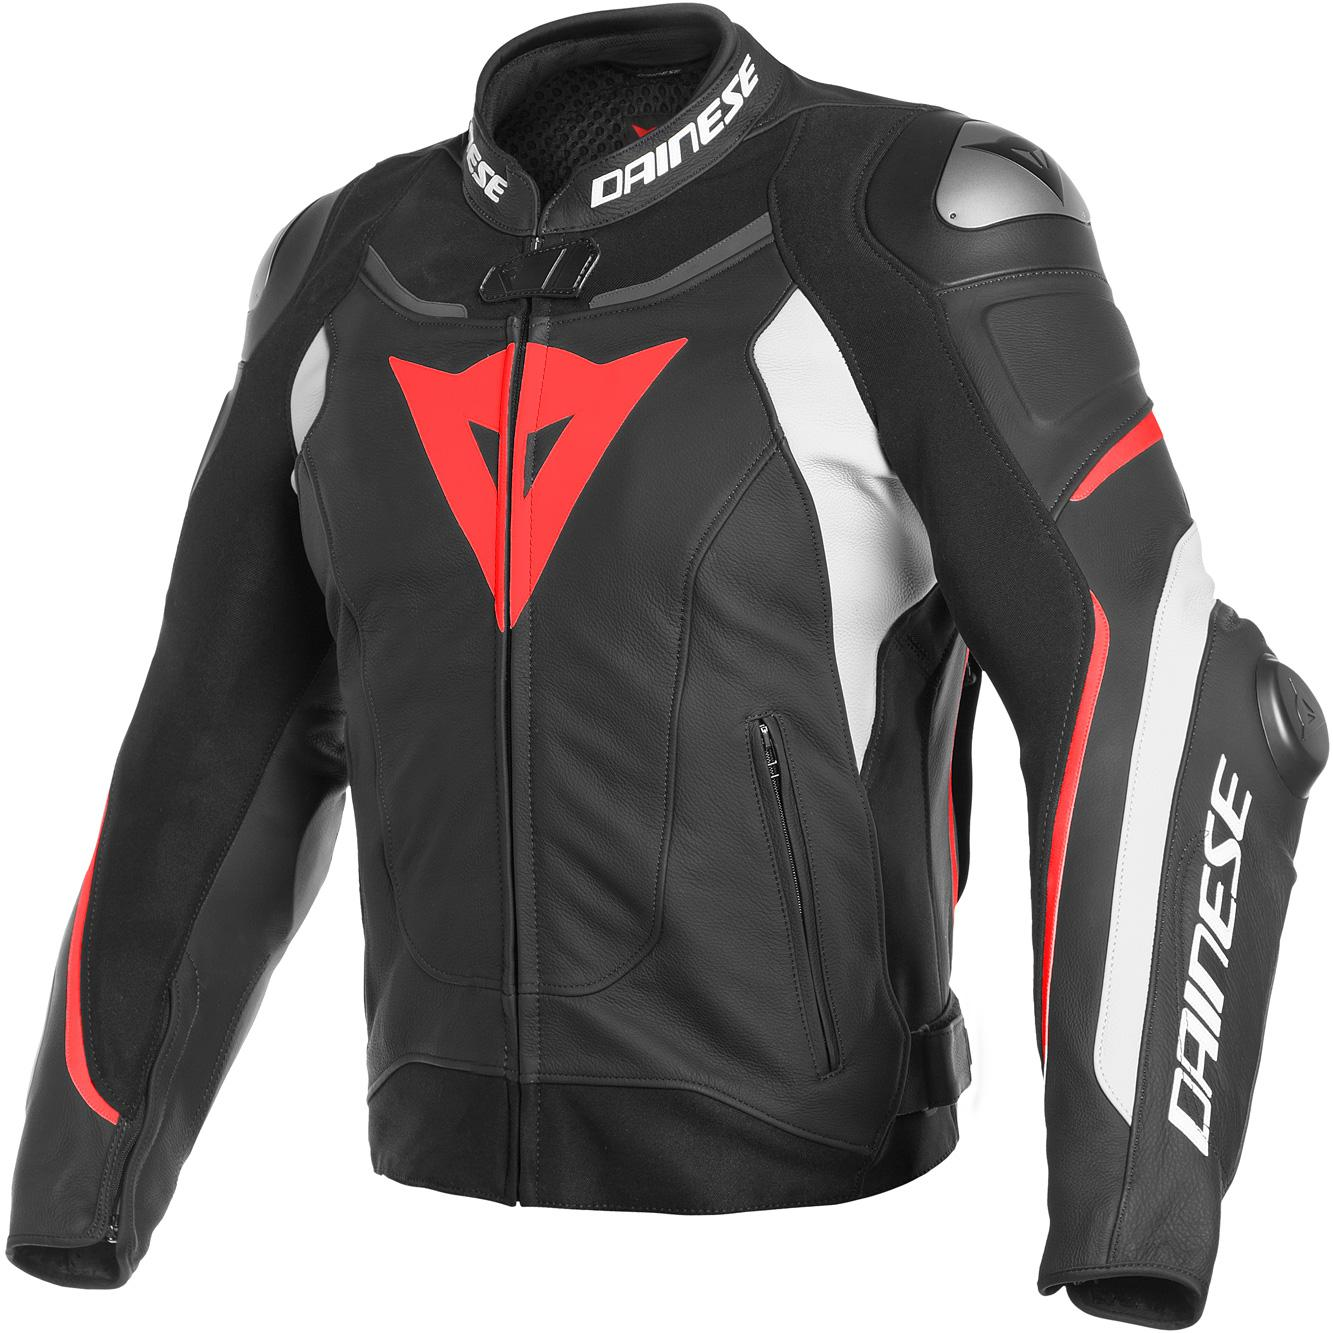 DAINESE-Blouson SUPER SPEED 3